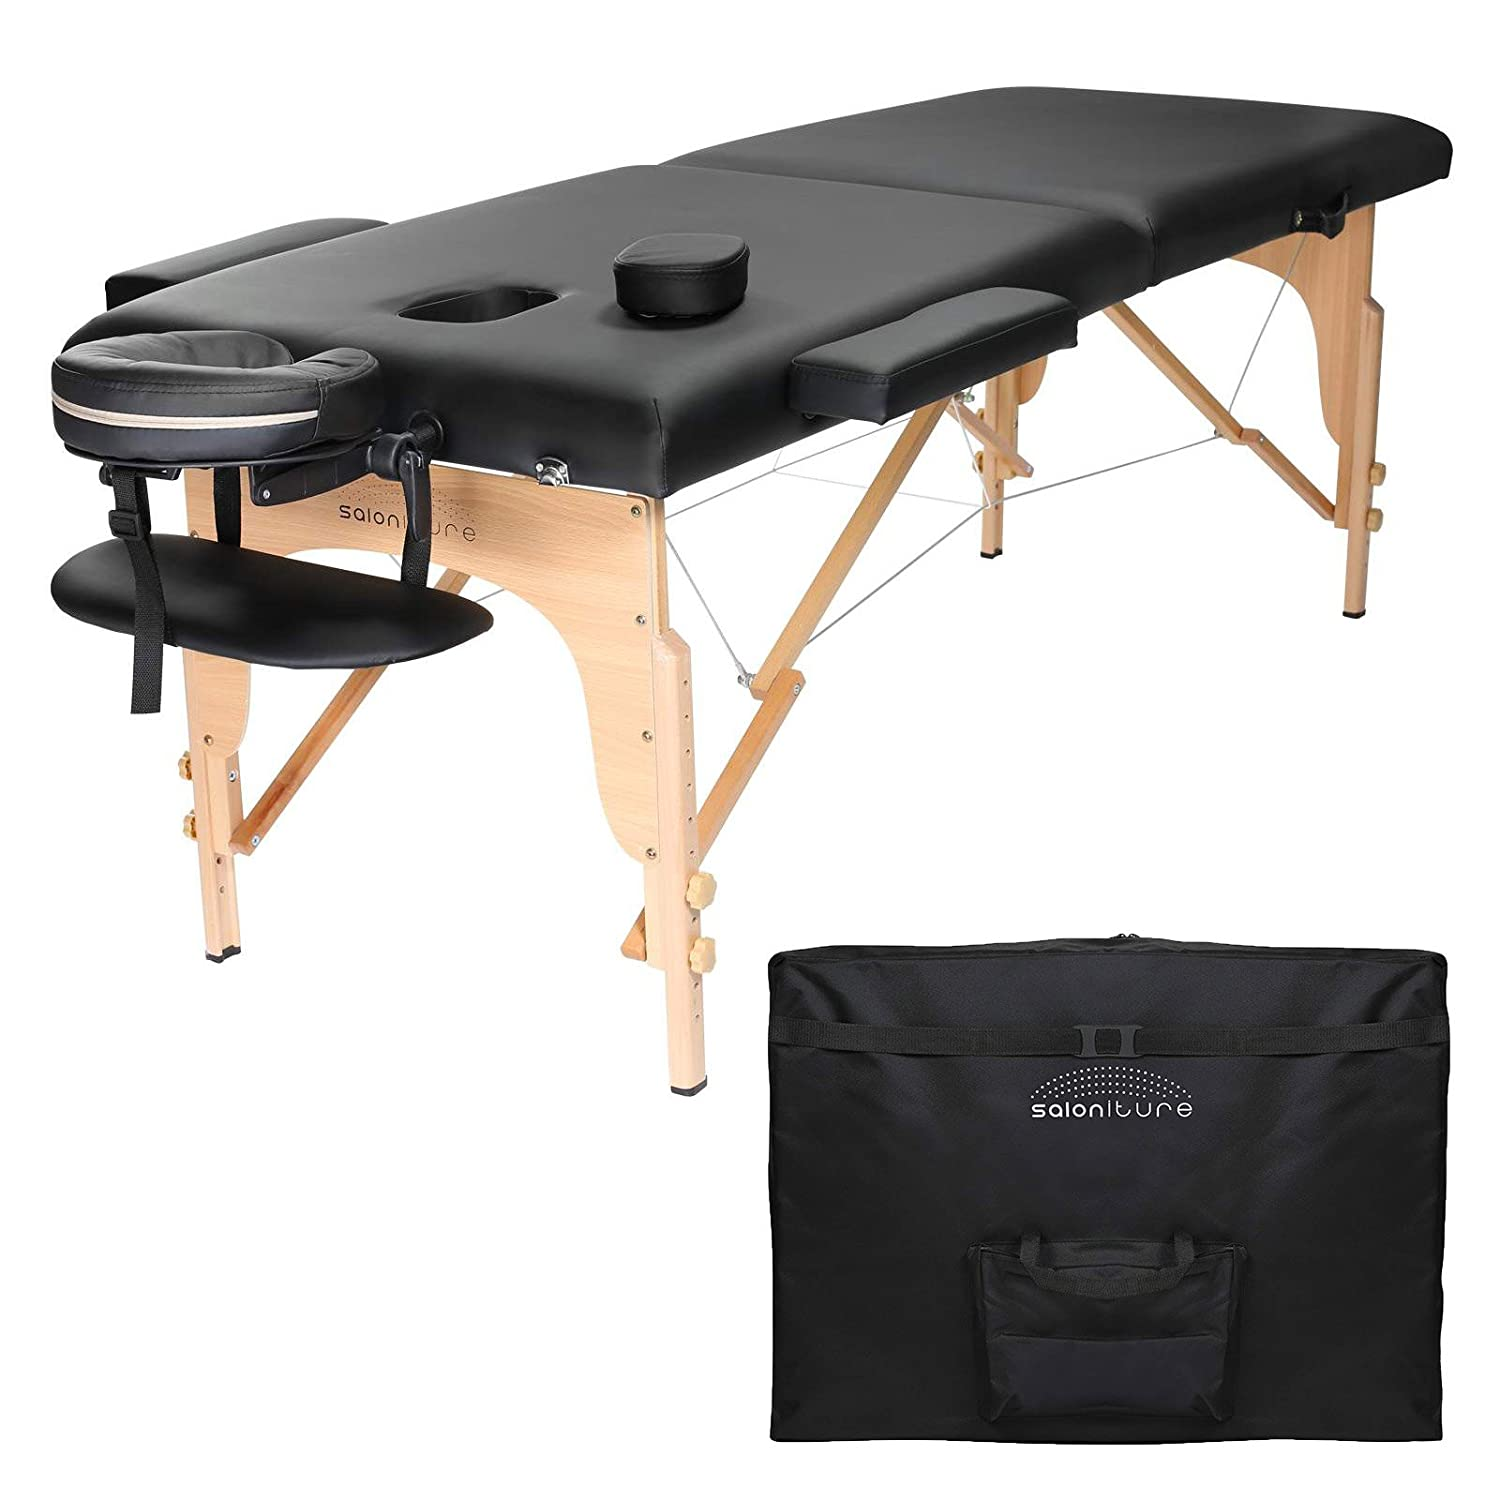 Photo of the Saloniture Professional Portable Folding Massage Table with its Carrying Case